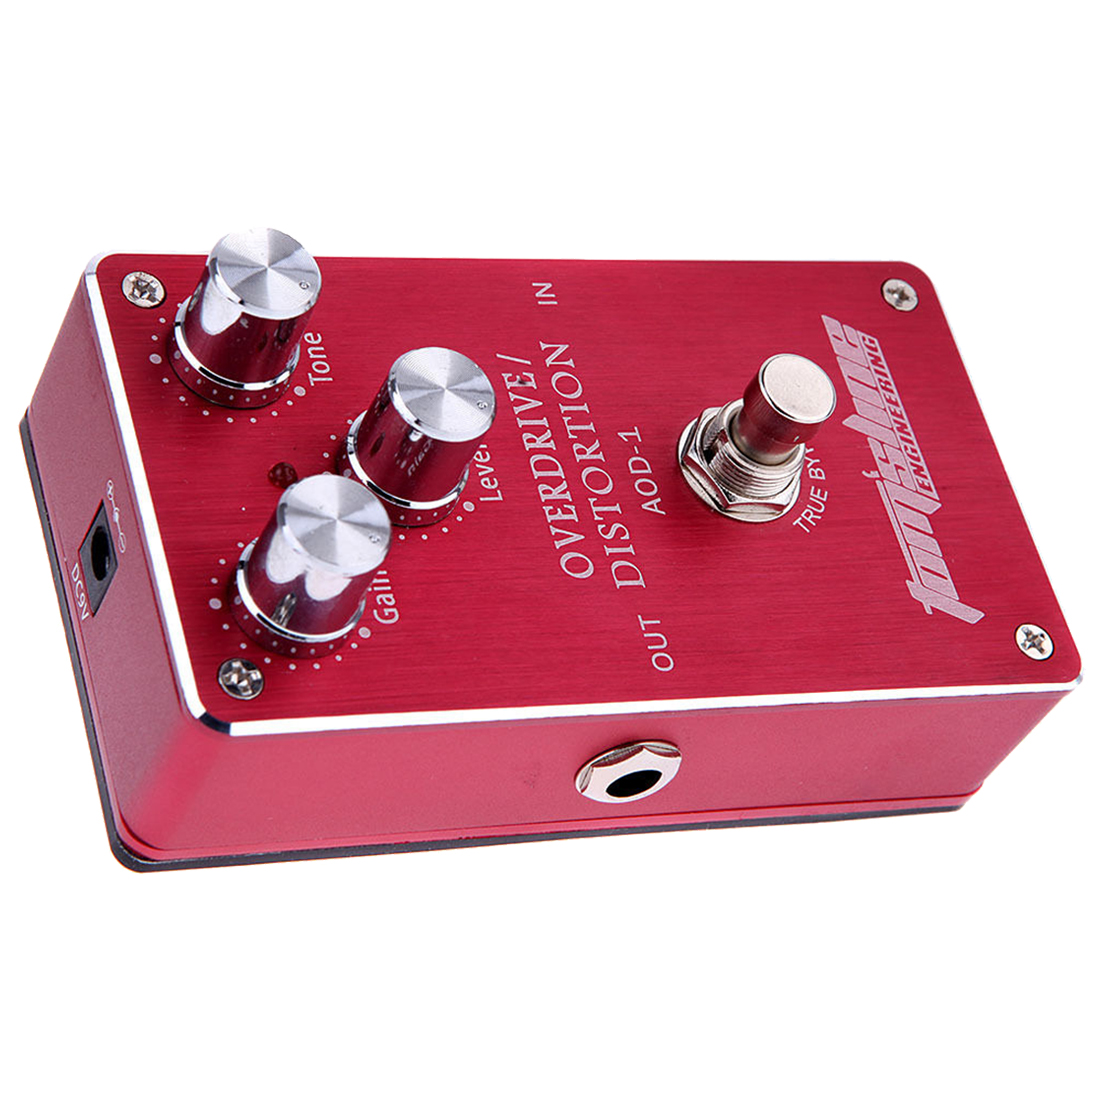 Aroma AOD-1 Electric Guitar Bass Overdrive Distortion Effect Pedal True Bypass aroma tom sline amd 3 metal distortion mini guitar effect pedal analogue effect true bypass